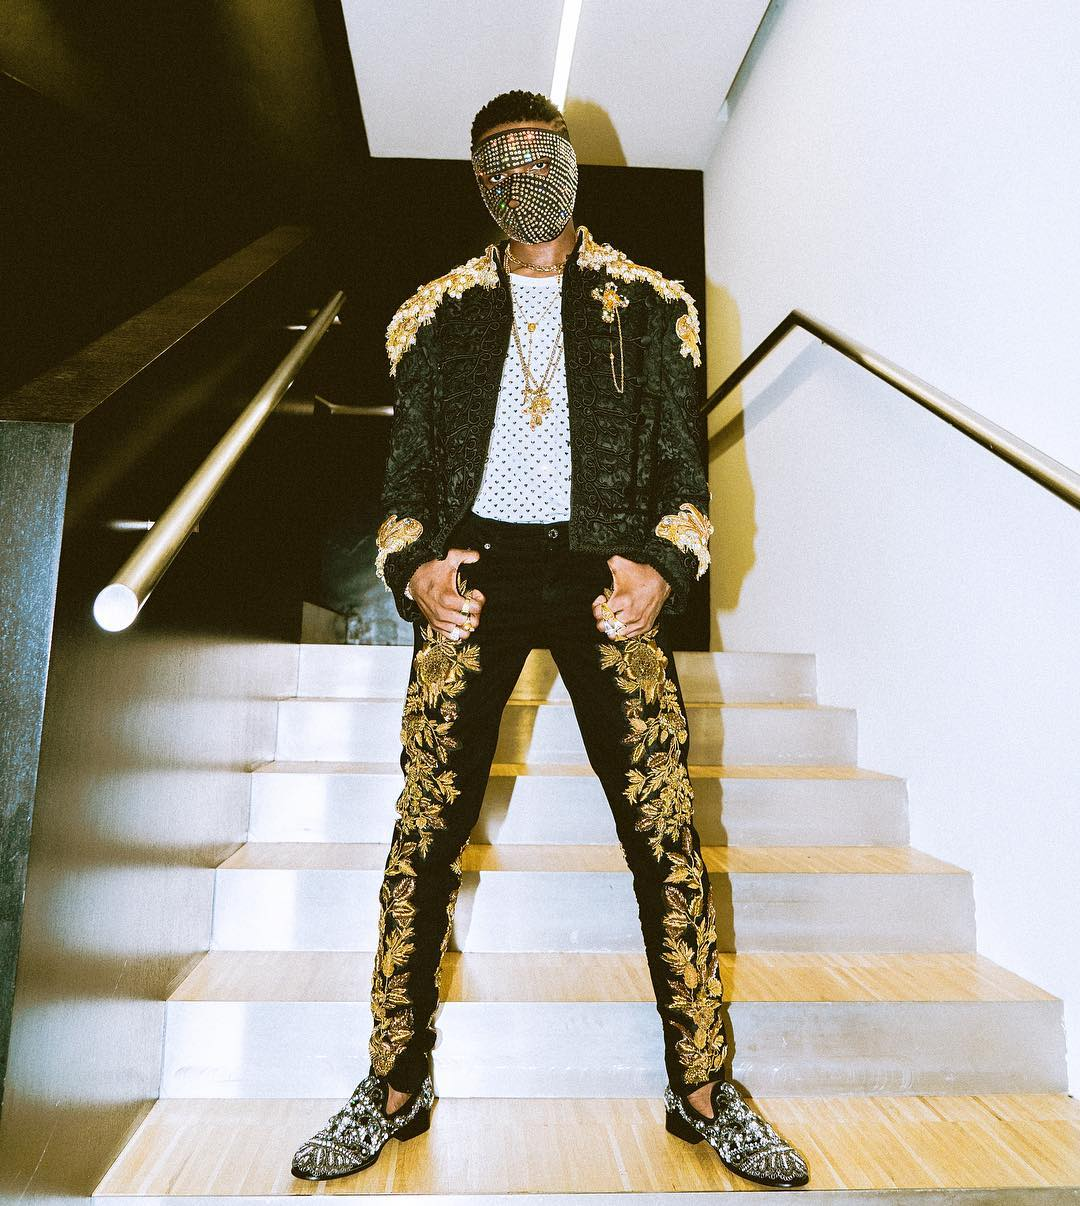 DOWNLOAD Latest WizKid Starboy 2019 Songs, Videos, Albums and Mixtapes